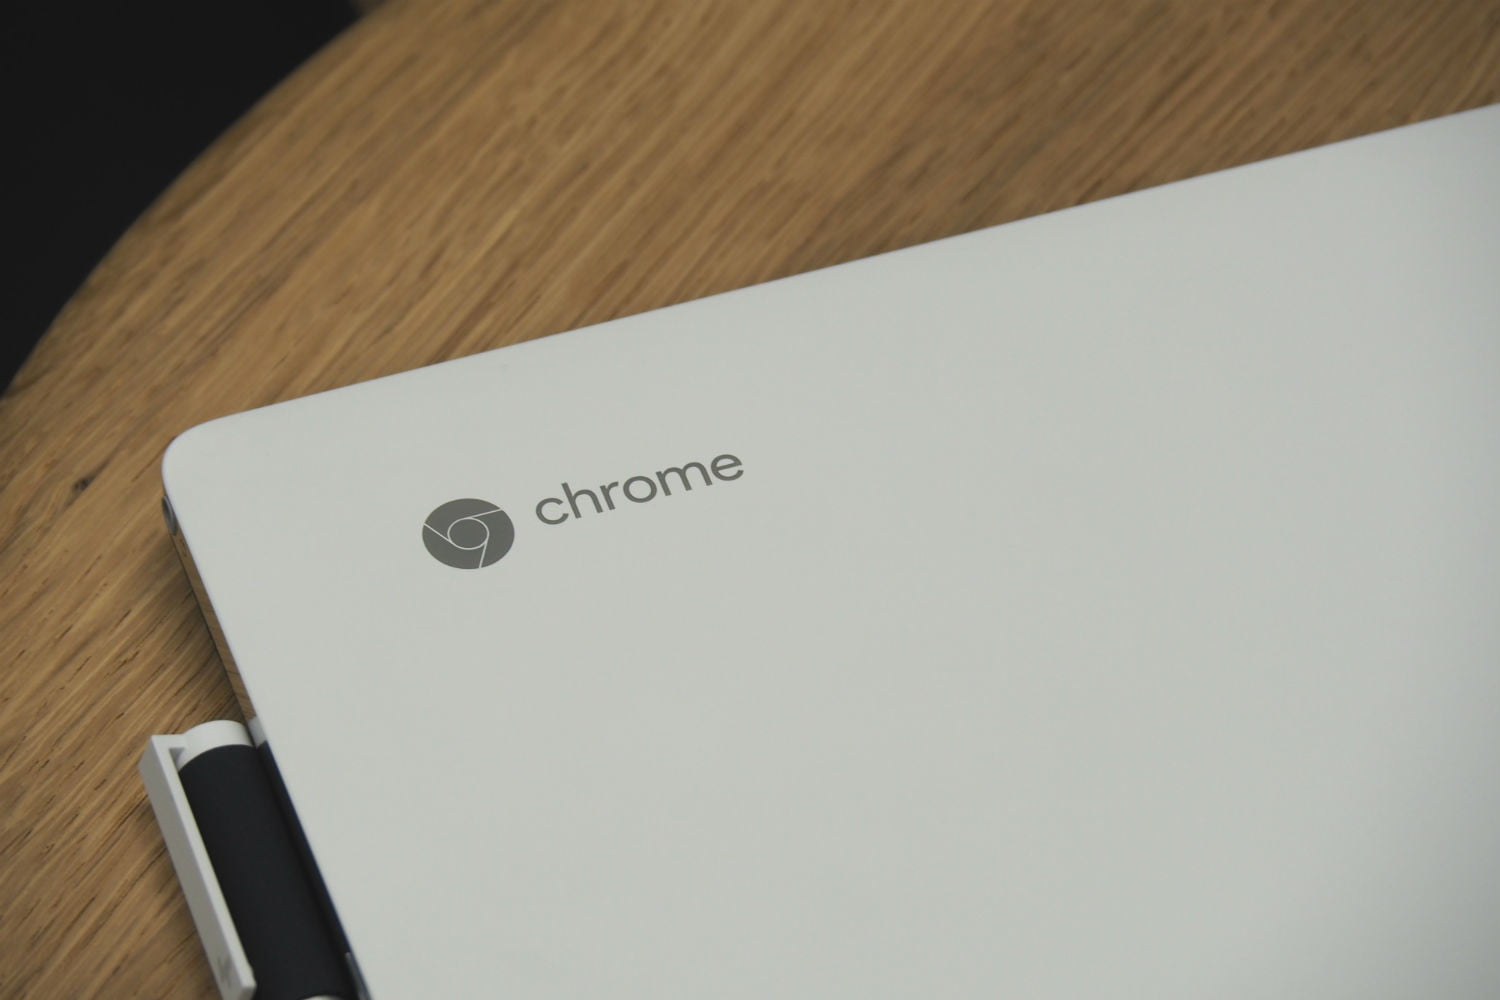 Best Chrombook 2019 The Best Chromebooks for 2019: Google, HP, Lenovo, and More